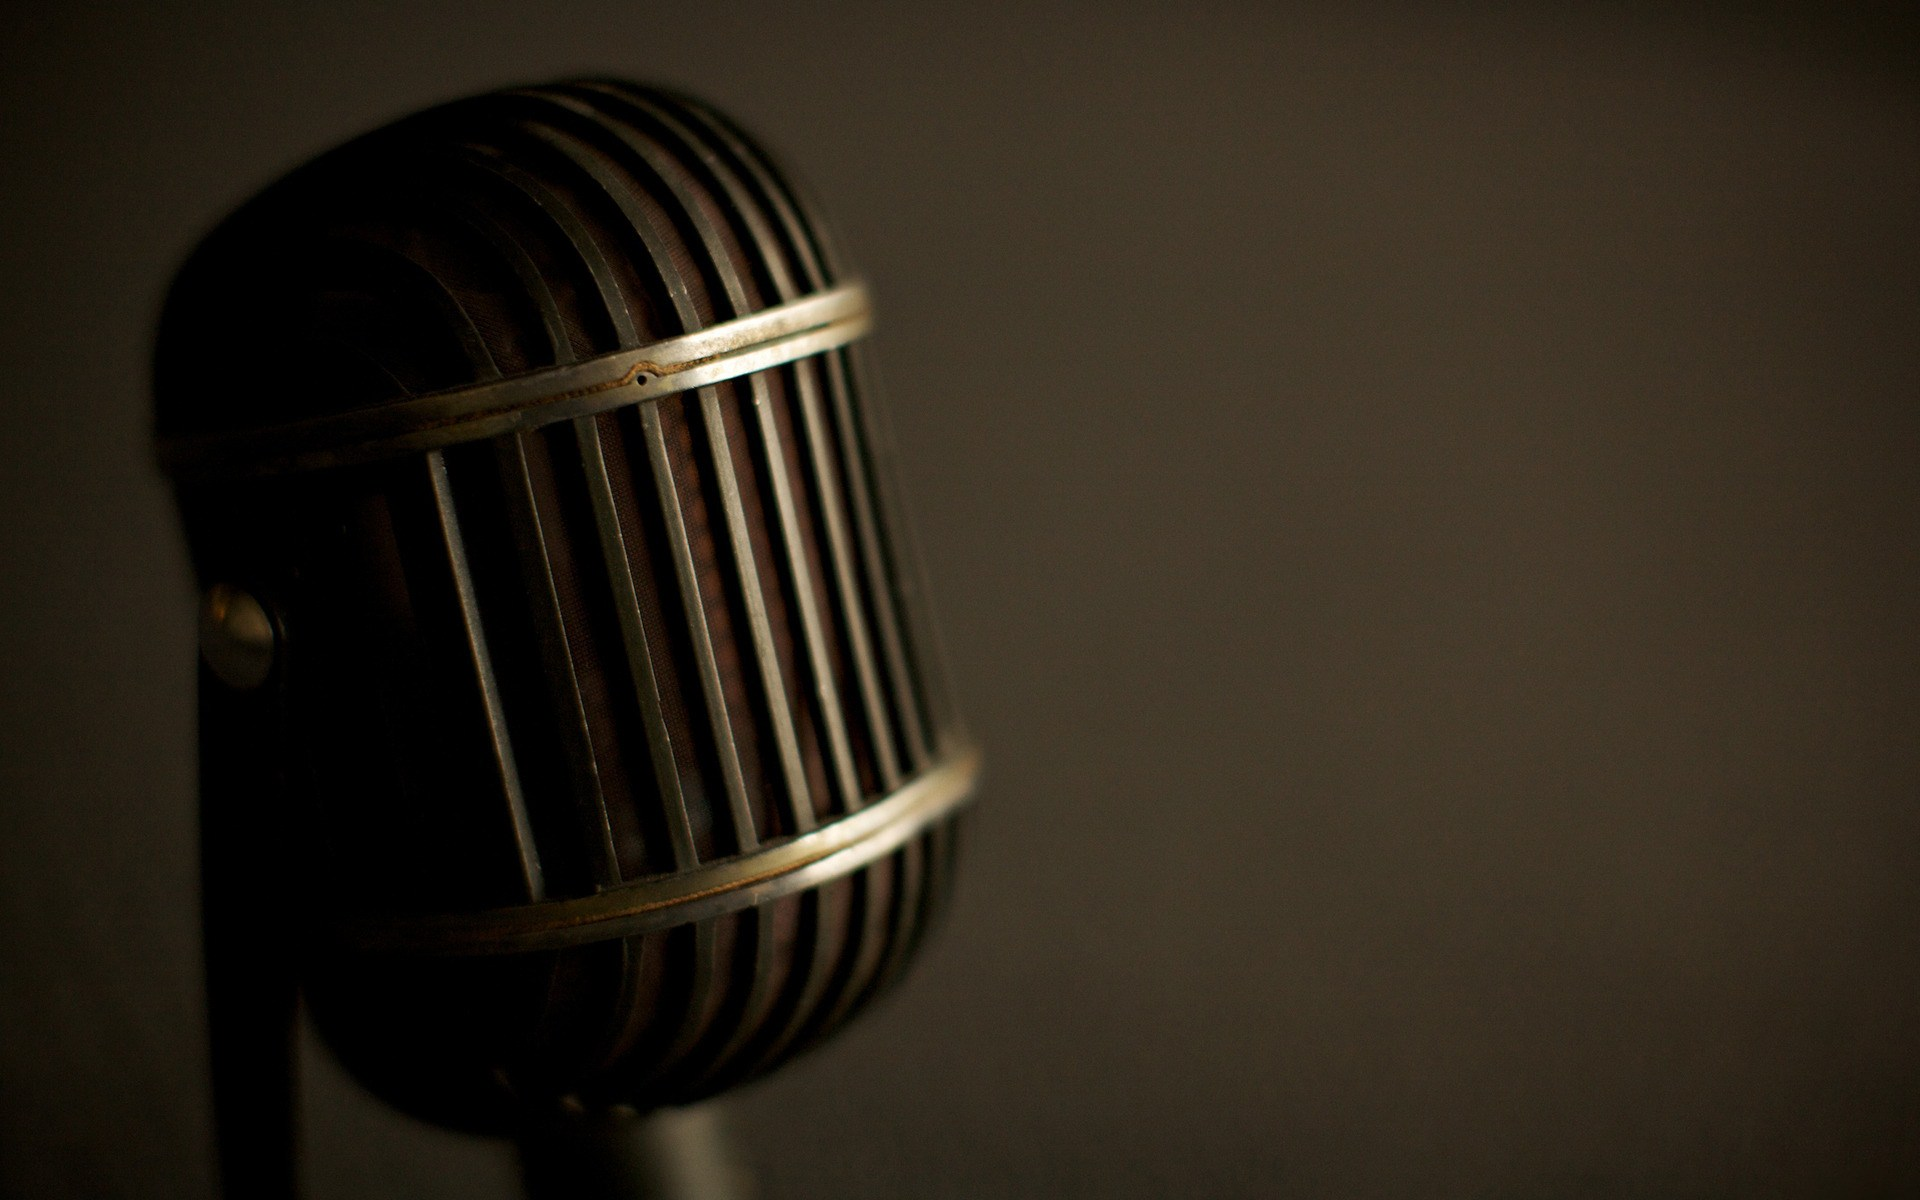 Microphone Close Up Wallpaper 15492